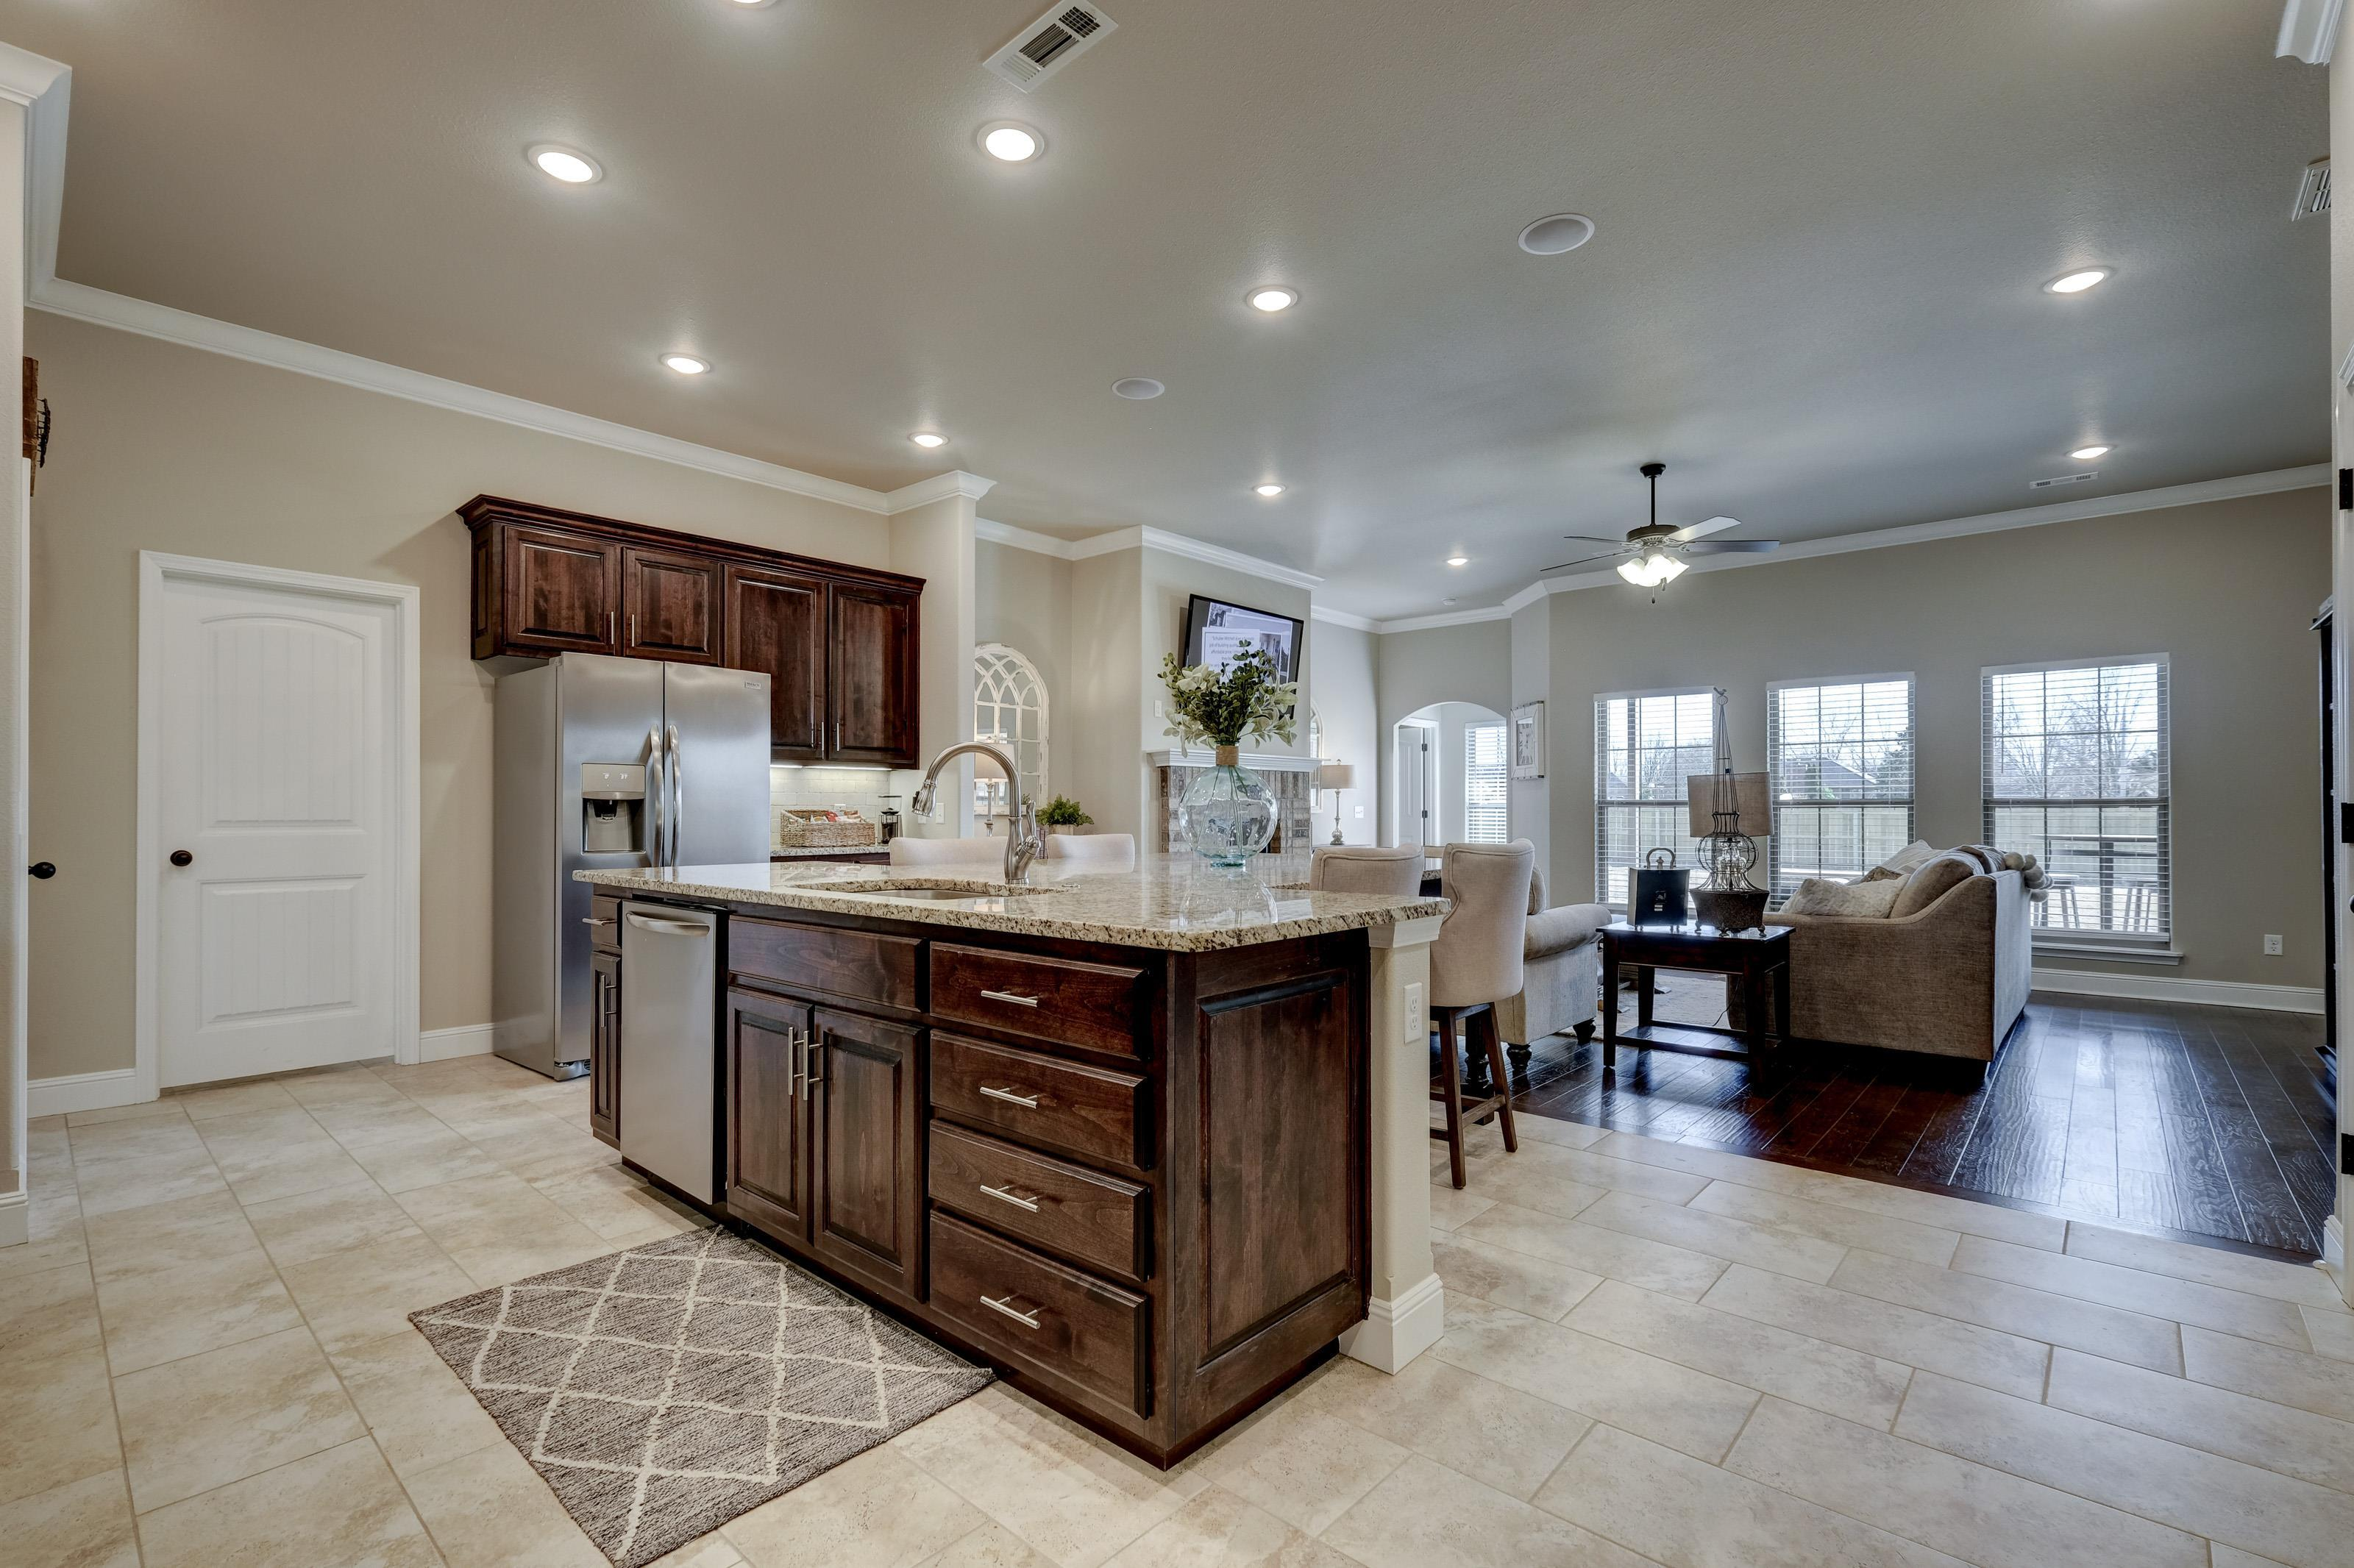 Kitchen featured in the 2600T Series By Schuber Mitchell Homes in Joplin, MO